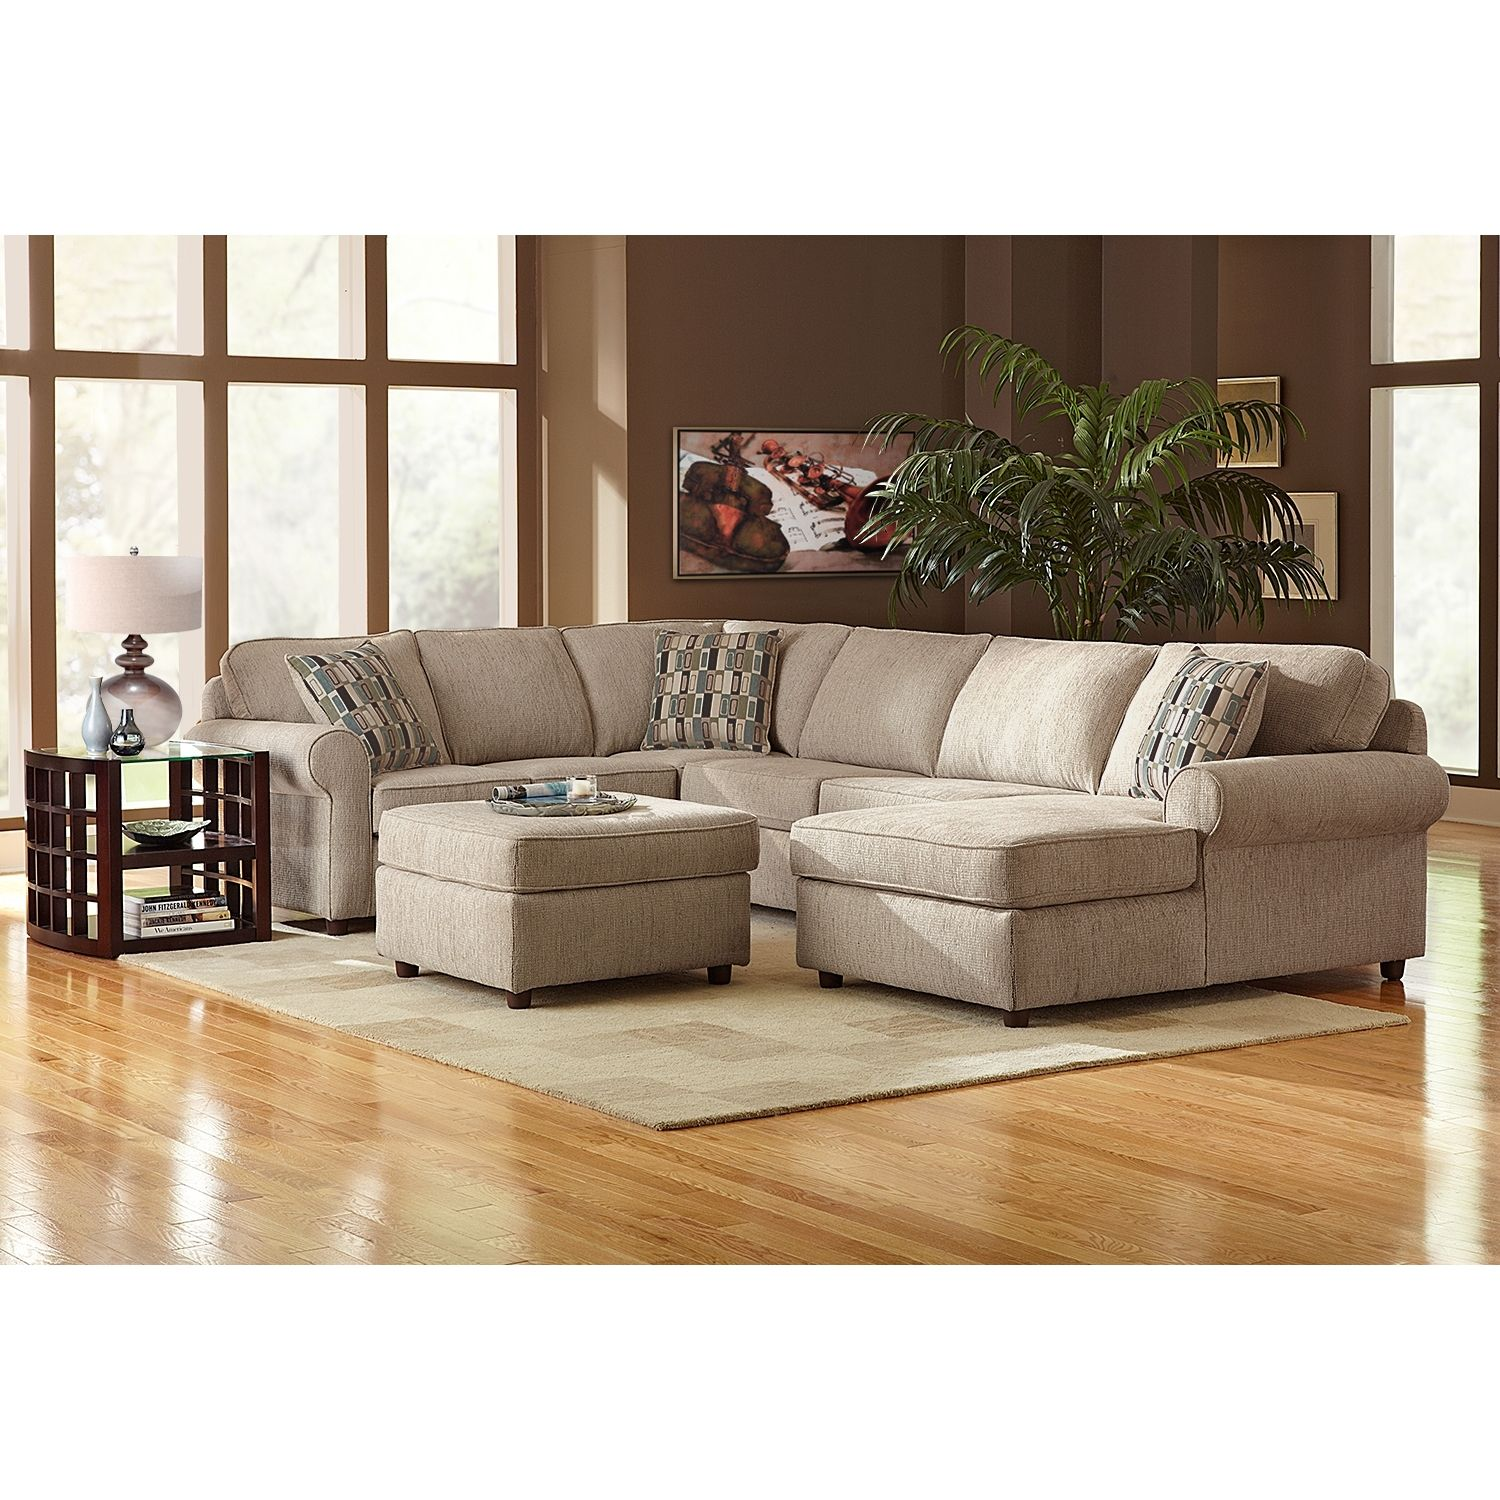 Monarch ii 3 piece sectional value city furniture sectional furnituresectional living roomsliving room